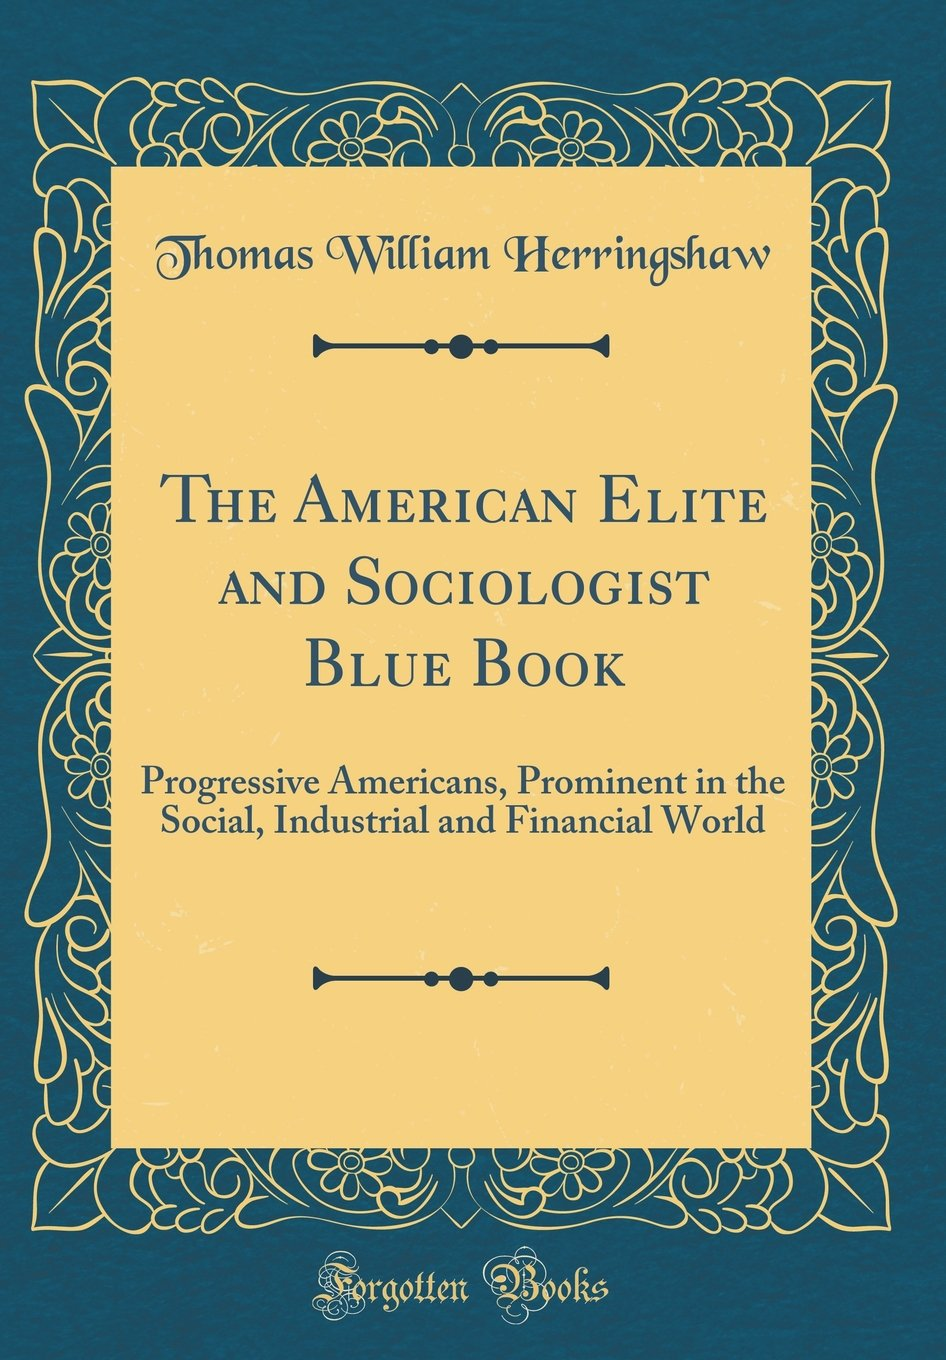 Download The American Elite and Sociologist Blue Book: Progressive Americans, Prominent in the Social, Industrial and Financial World (Classic Reprint) ebook